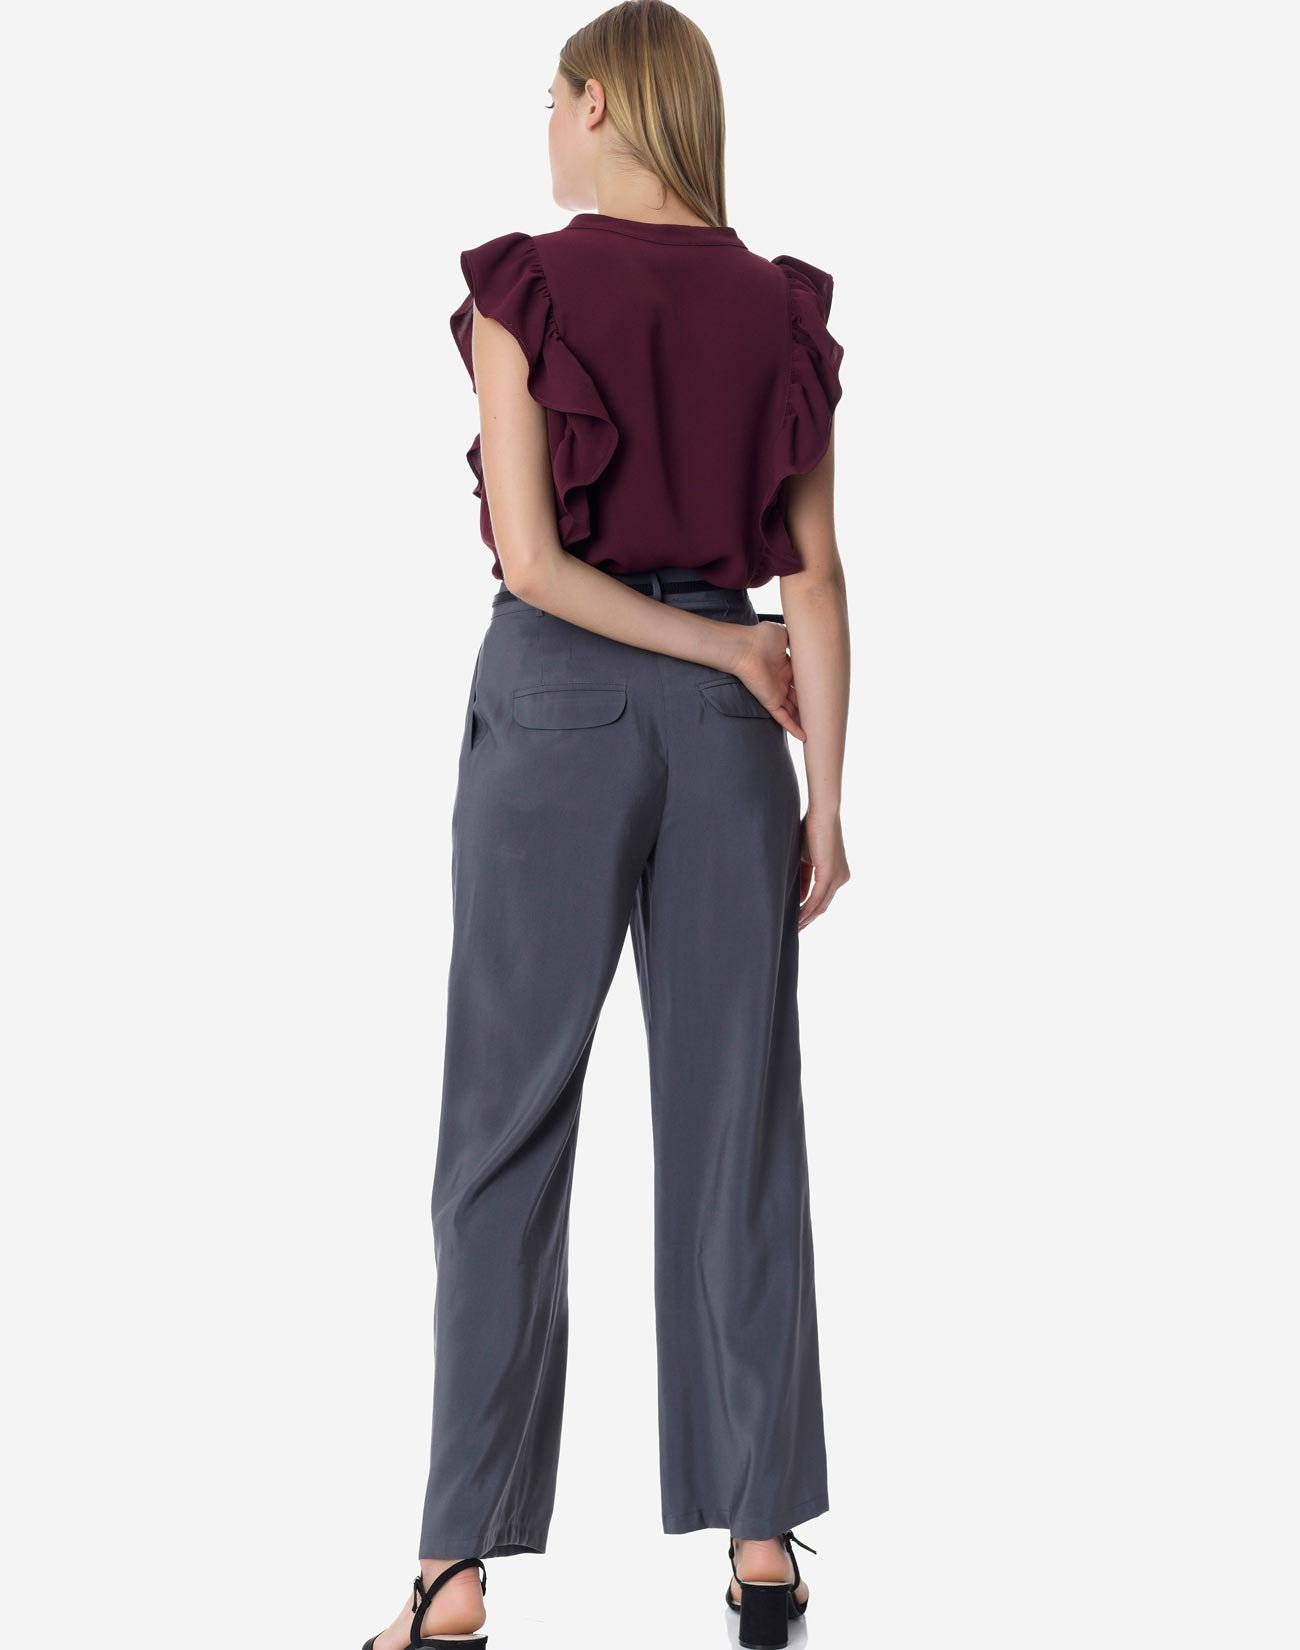 Highwaist trousers